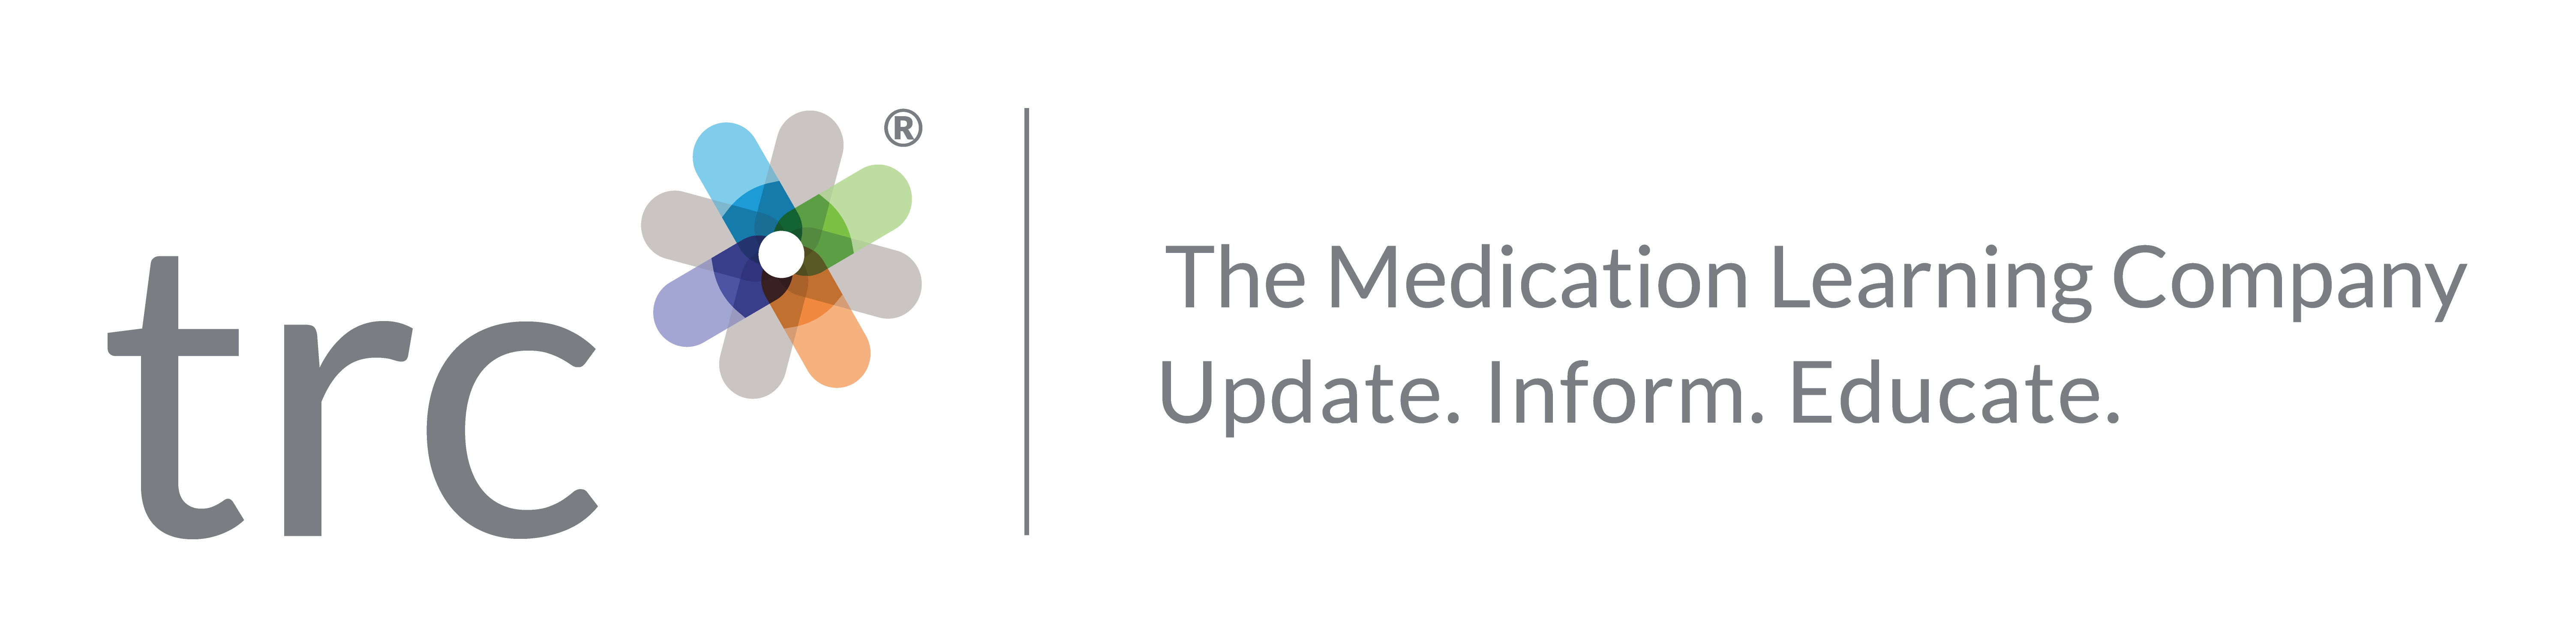 TRC | The Medication Learning Company. Update. Inform. Educate.